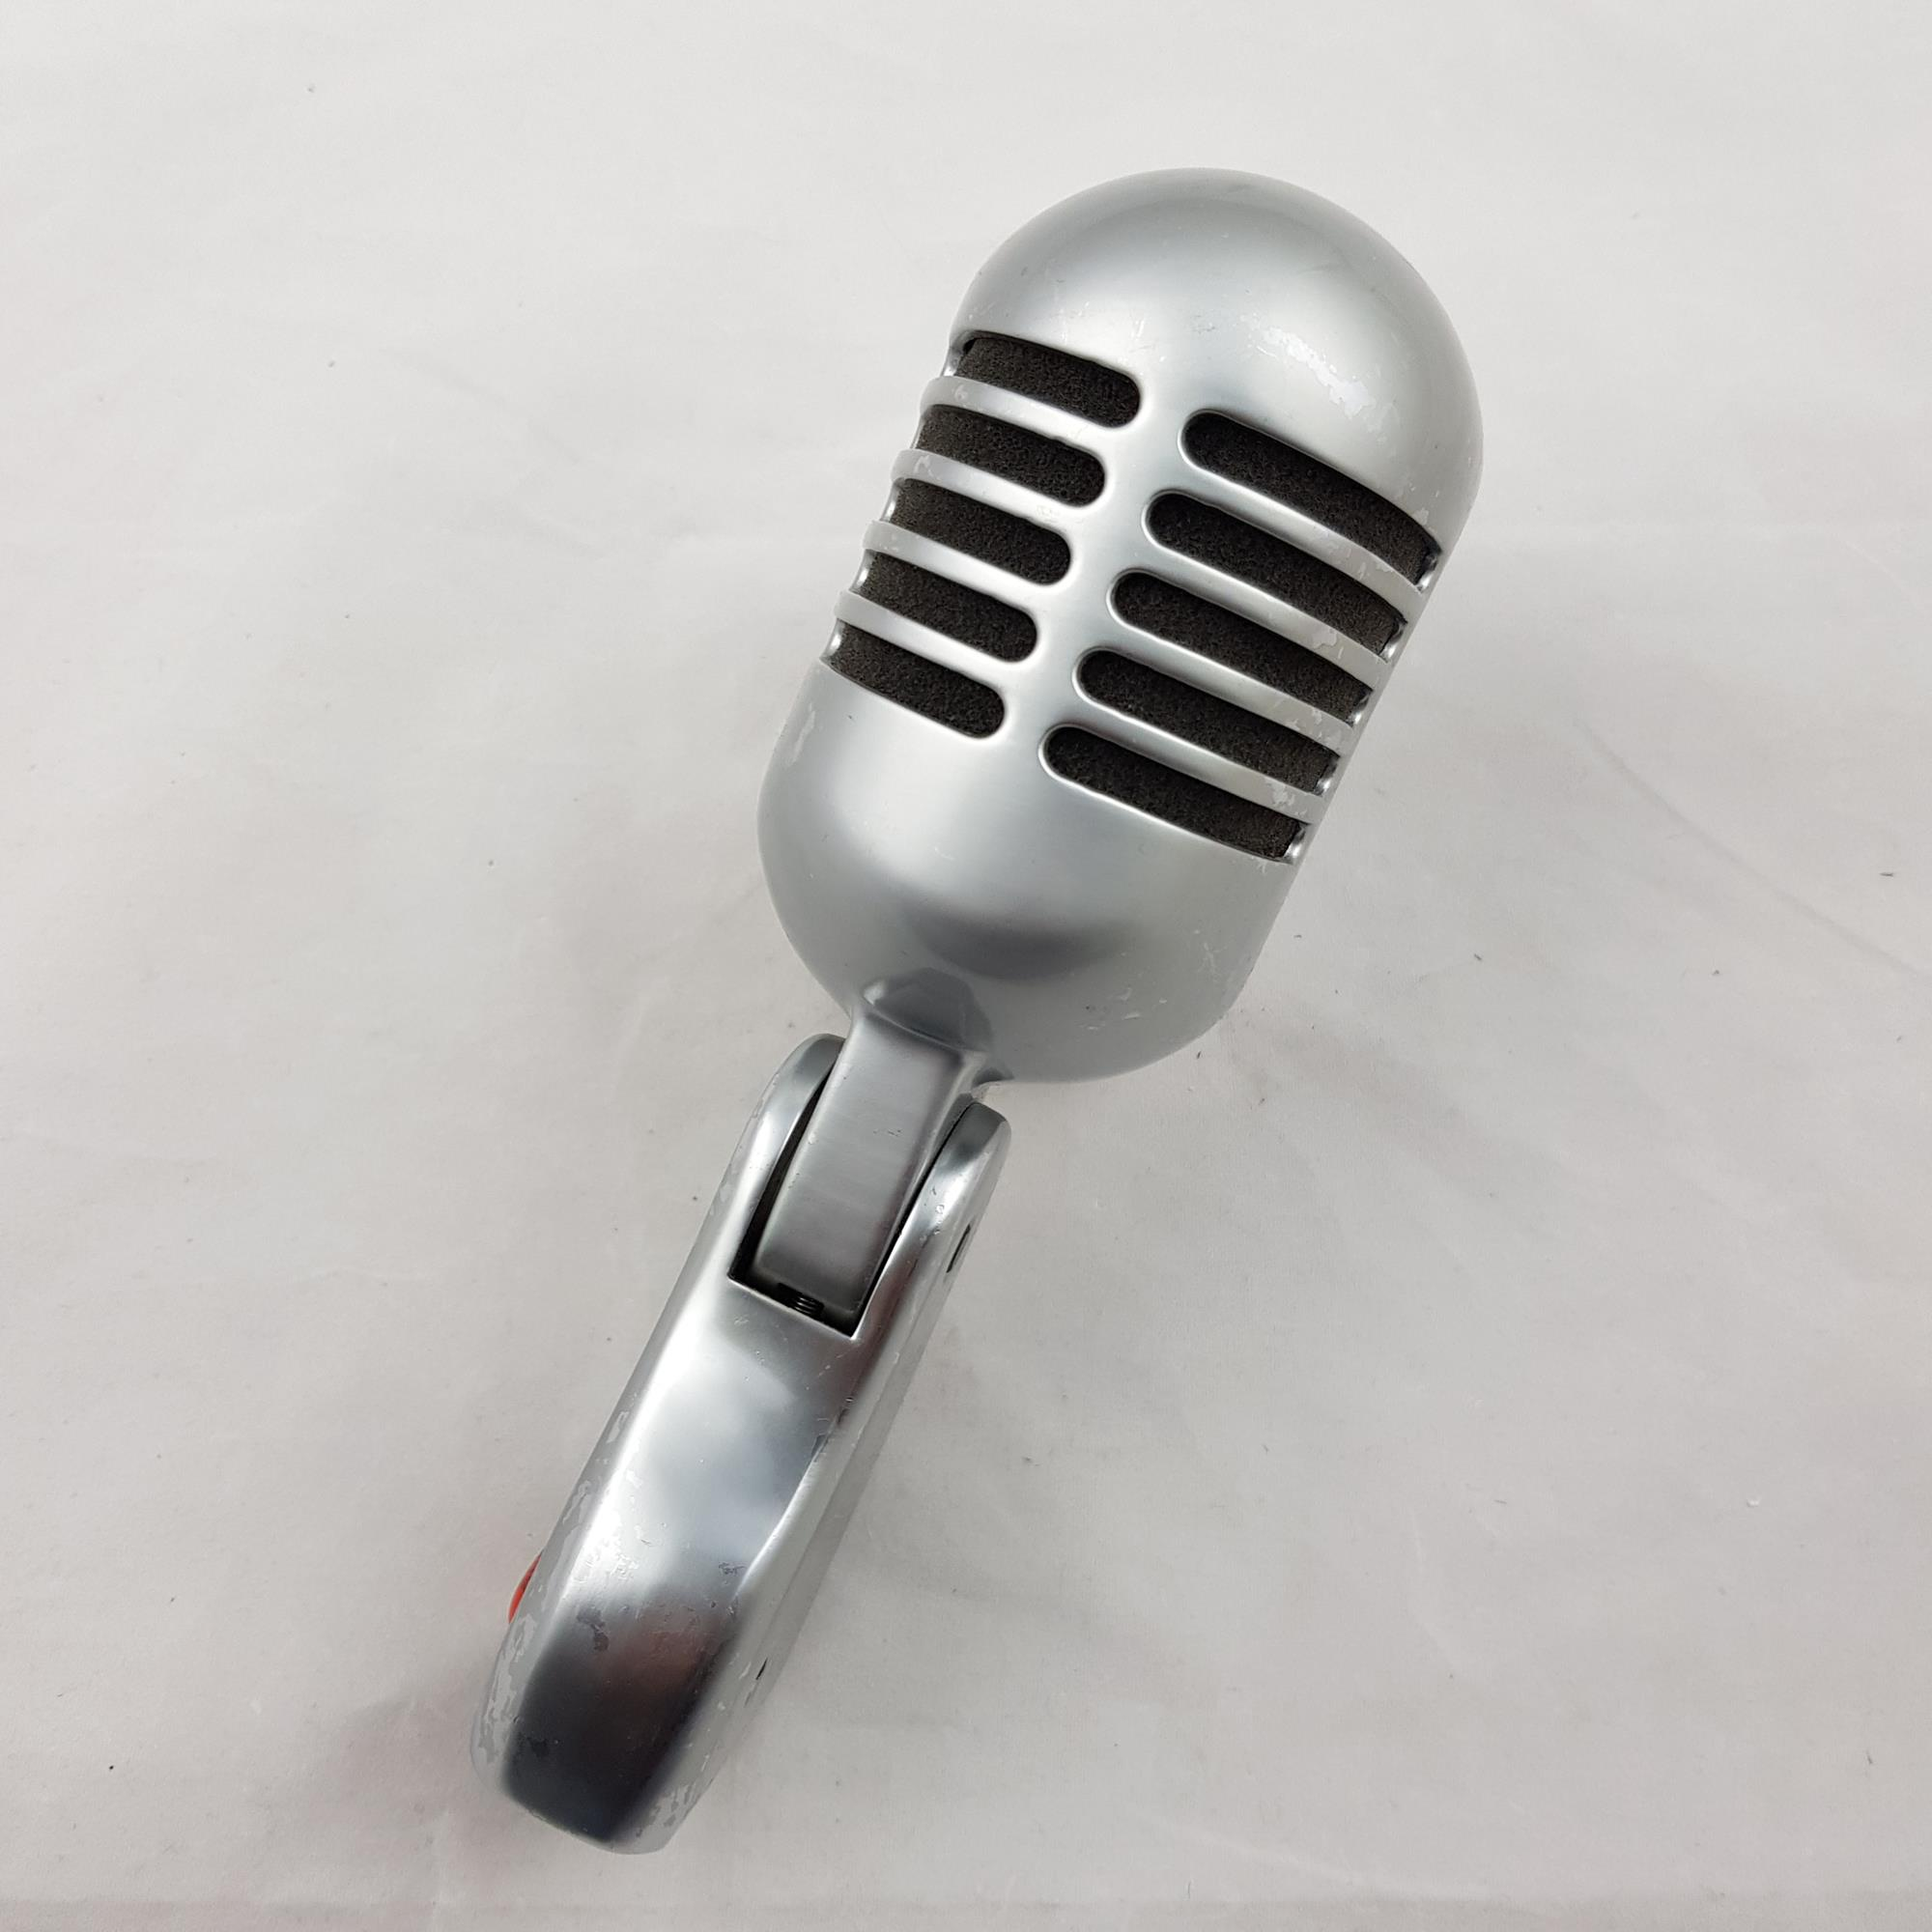 STAGG SDM007 50 VINTAGE STYLE VOICE MICROPHONE